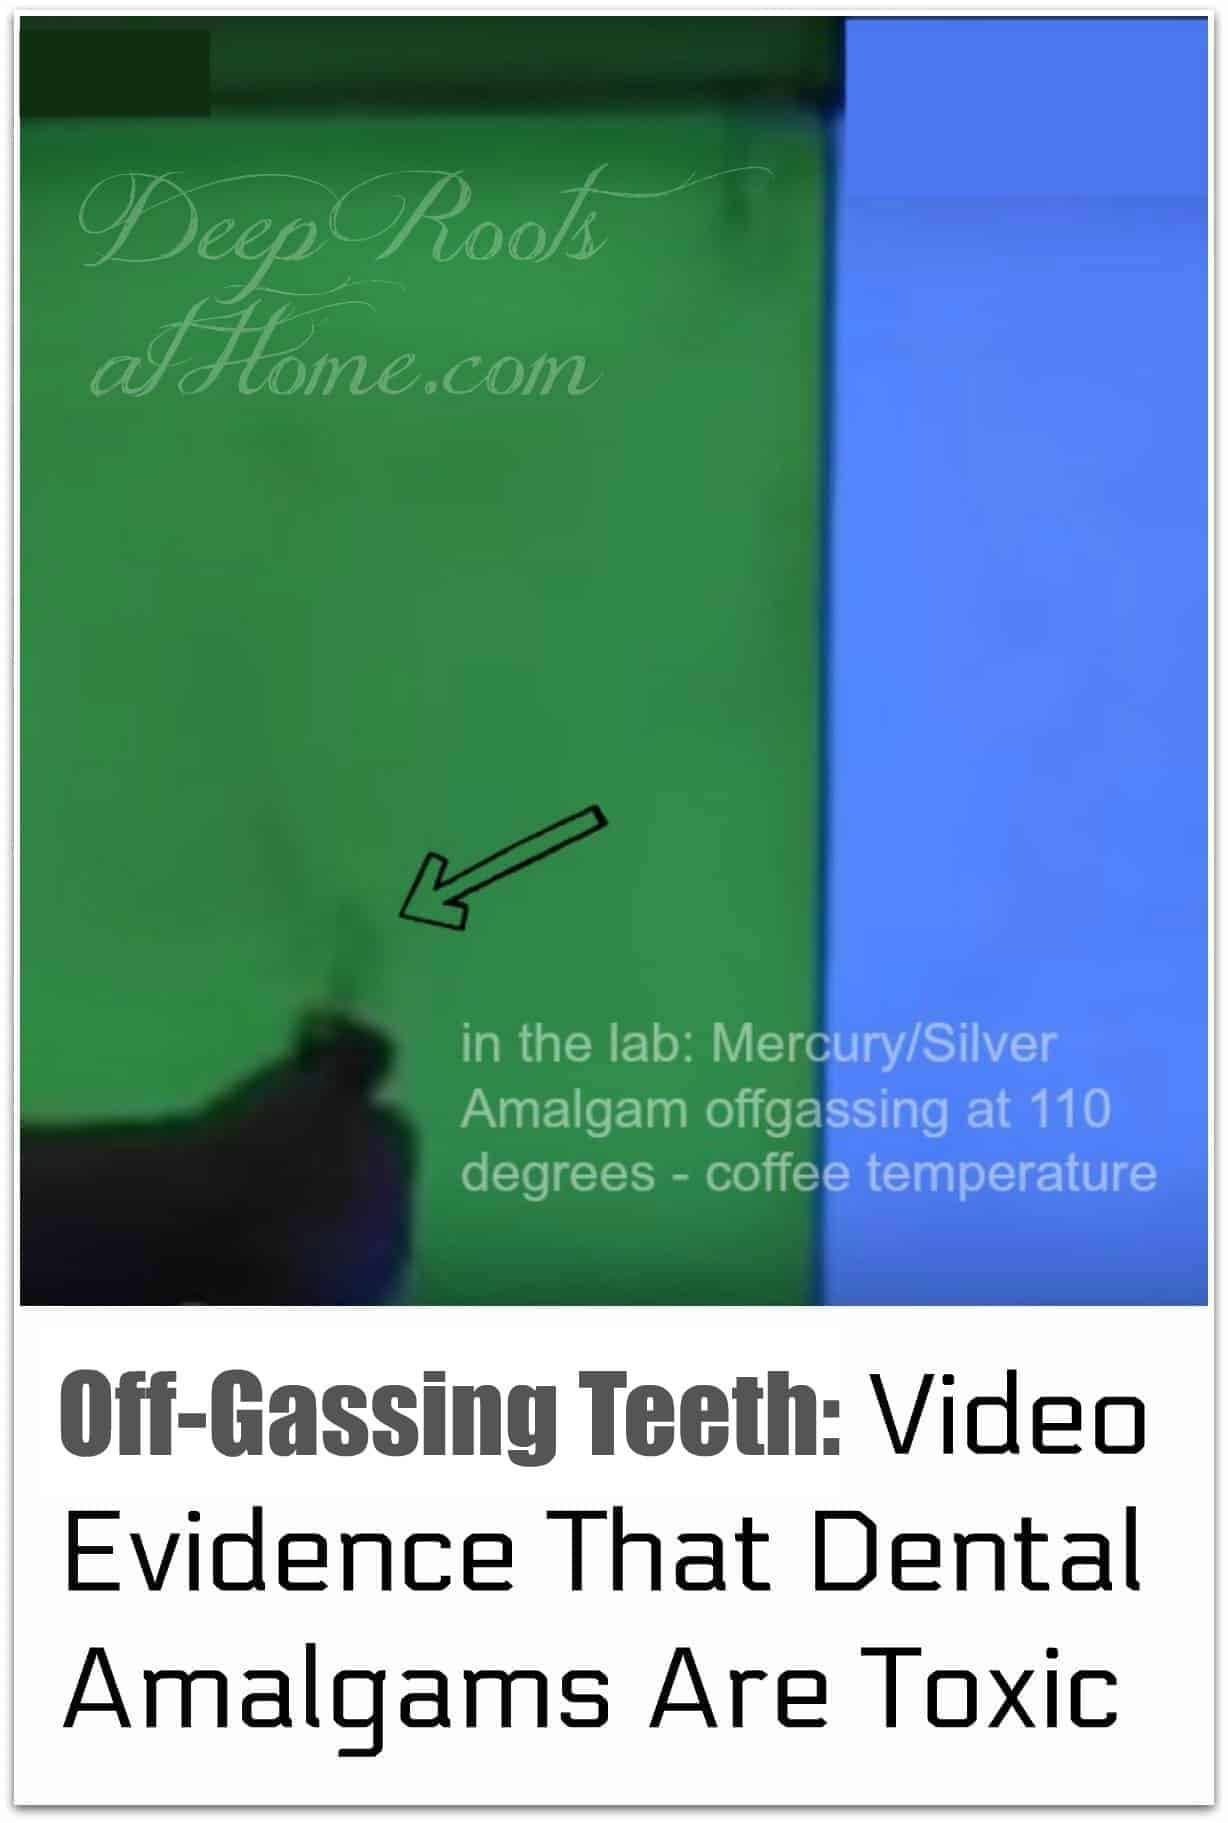 Off-Gassing Teeth: Video Evidence That Dental Amalgams Are Toxic. a smoking tooth